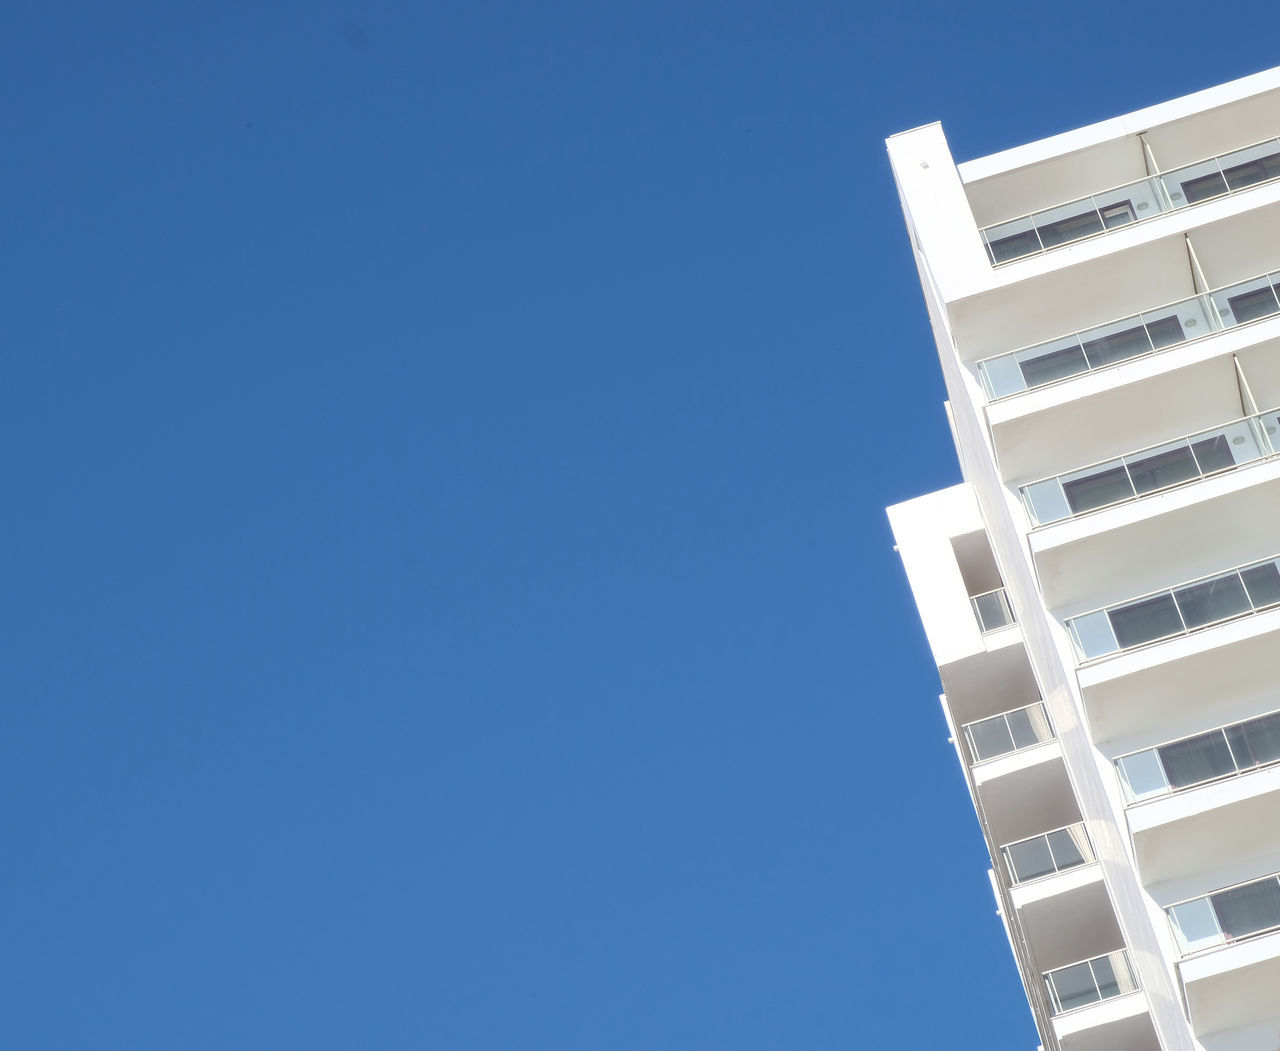 Architecture Balconies Blue Clear Sky Copy Space Day Deserted Emptiness High Contrast High Resolution Low Angle View Minimalistic No People Outdoors Sky Skyscraper Slanted SPAIN Sunny Day Torremolinos. Málaga. Tranquility Tranquility Scene Travel Destinations White And Blue White Building